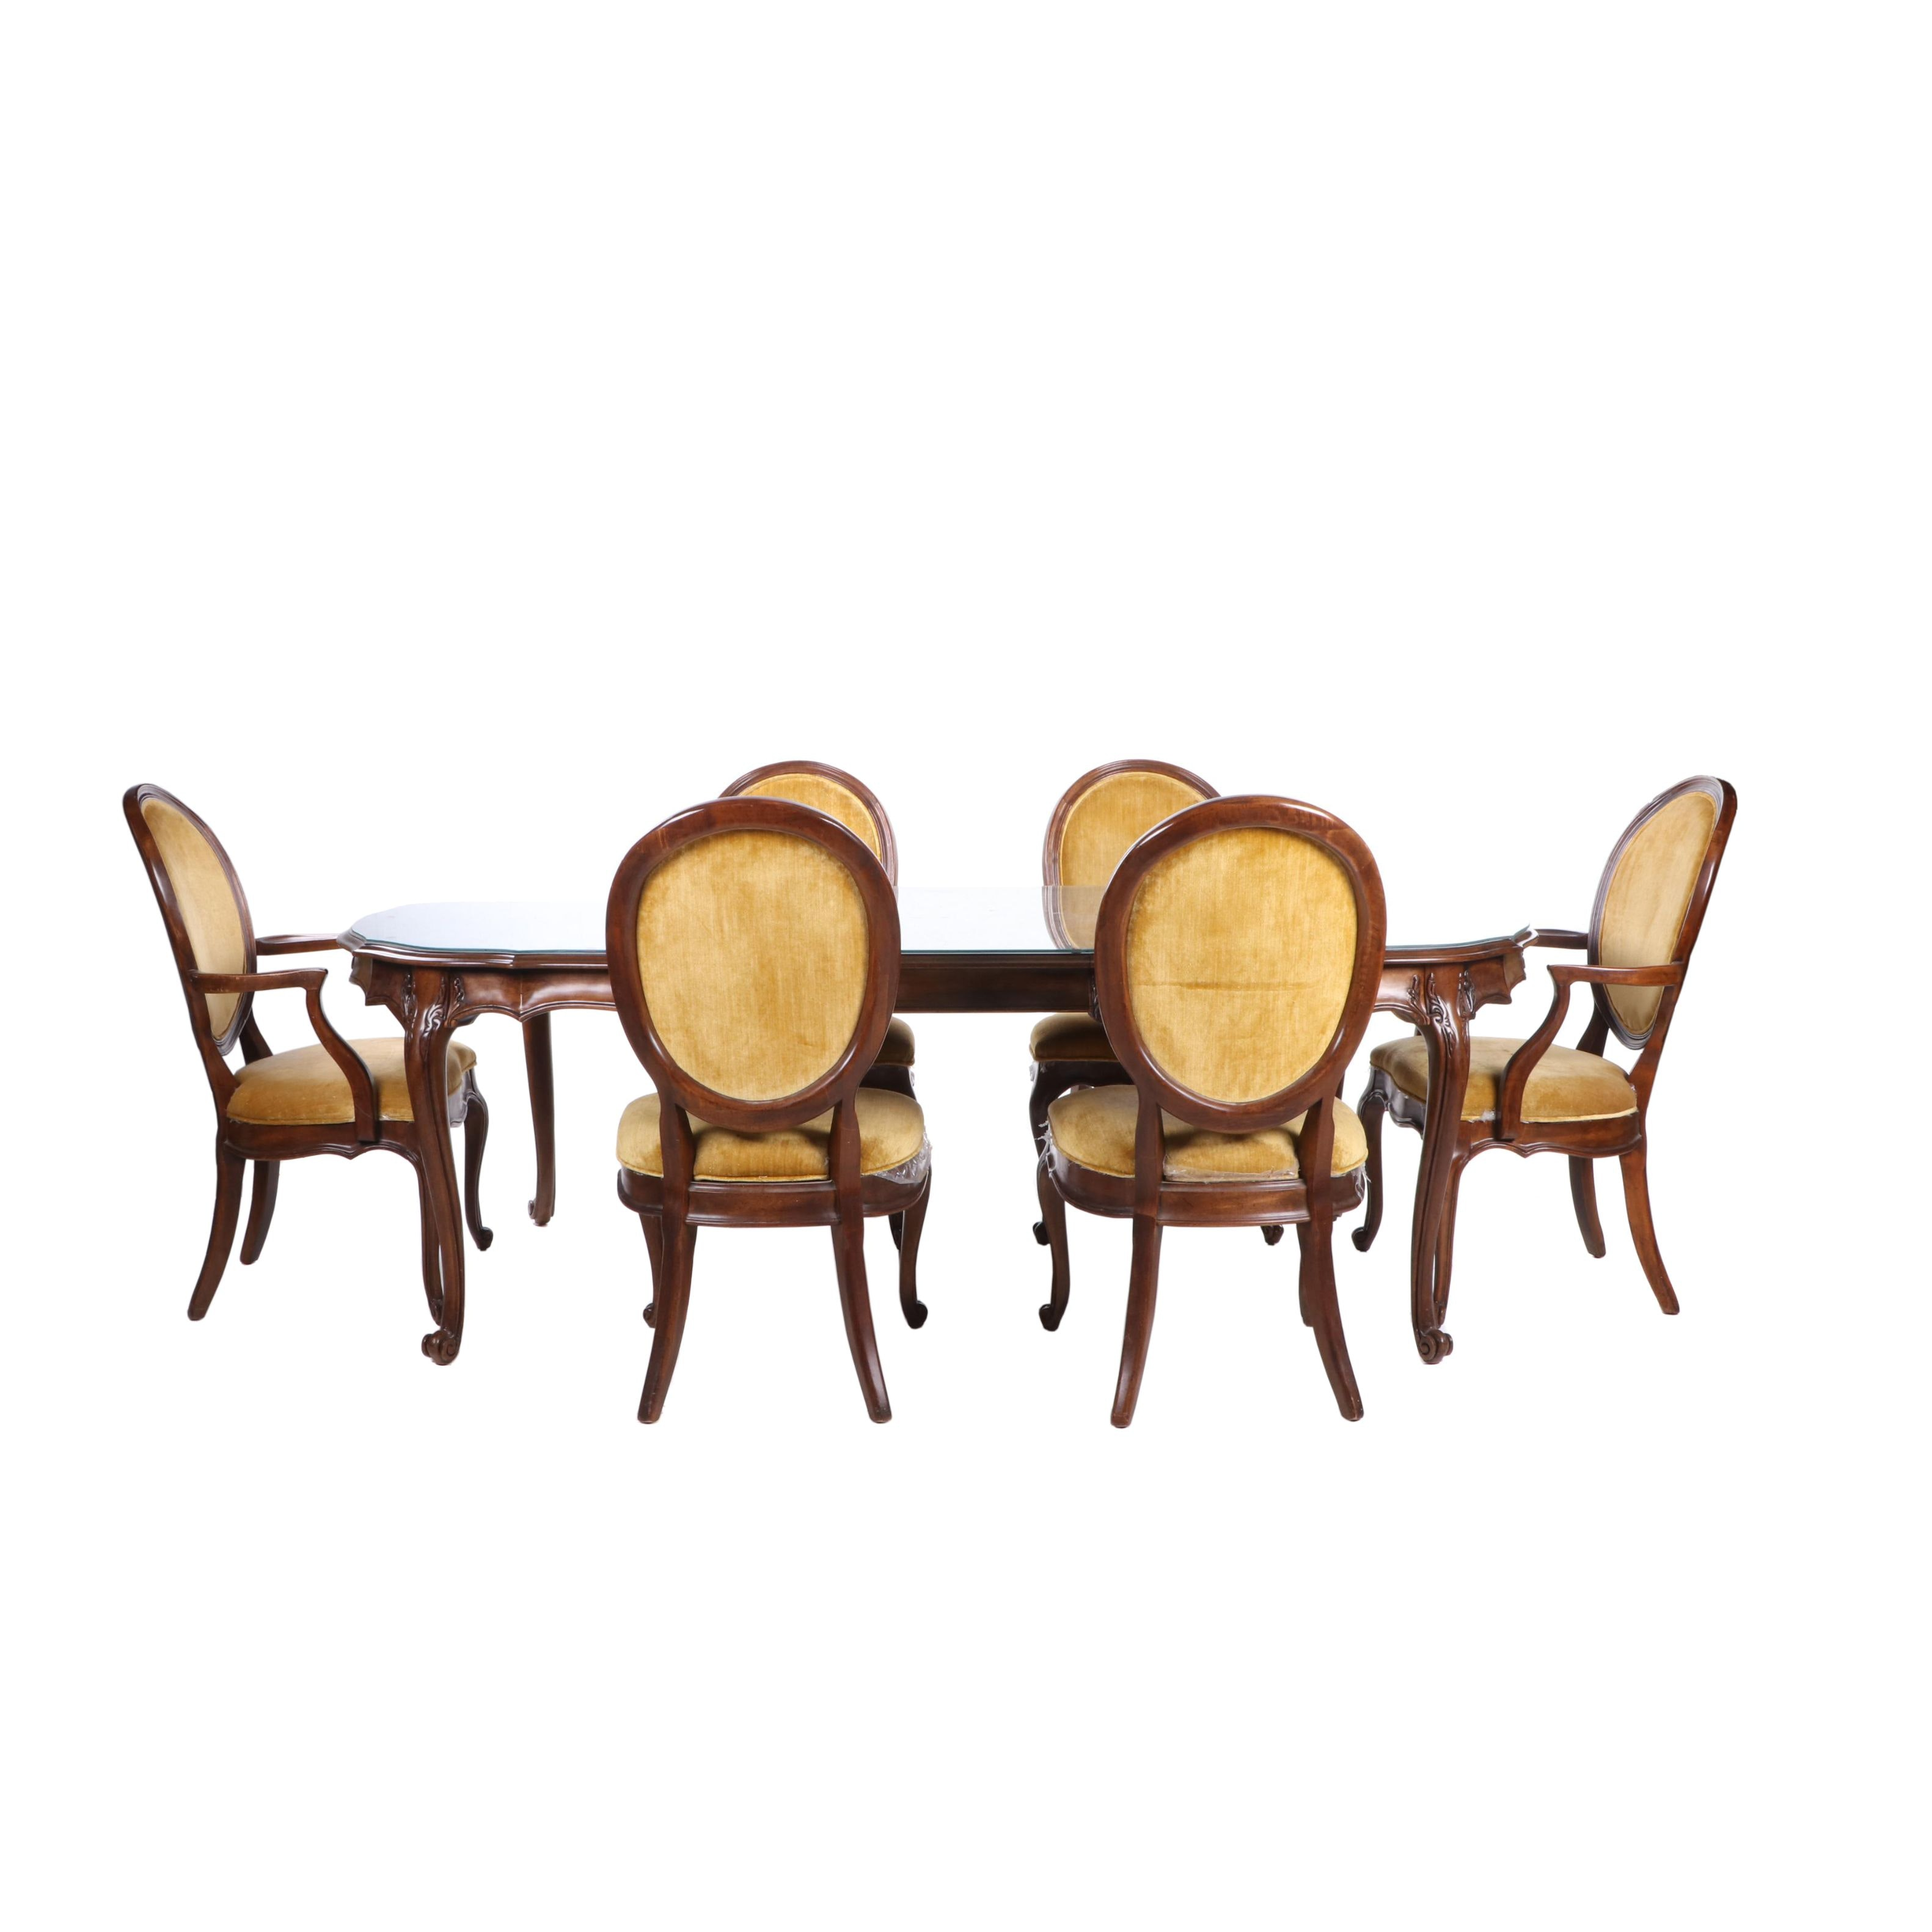 Contemporary Walnut Dining Table and Chairs, White Furniture Co.